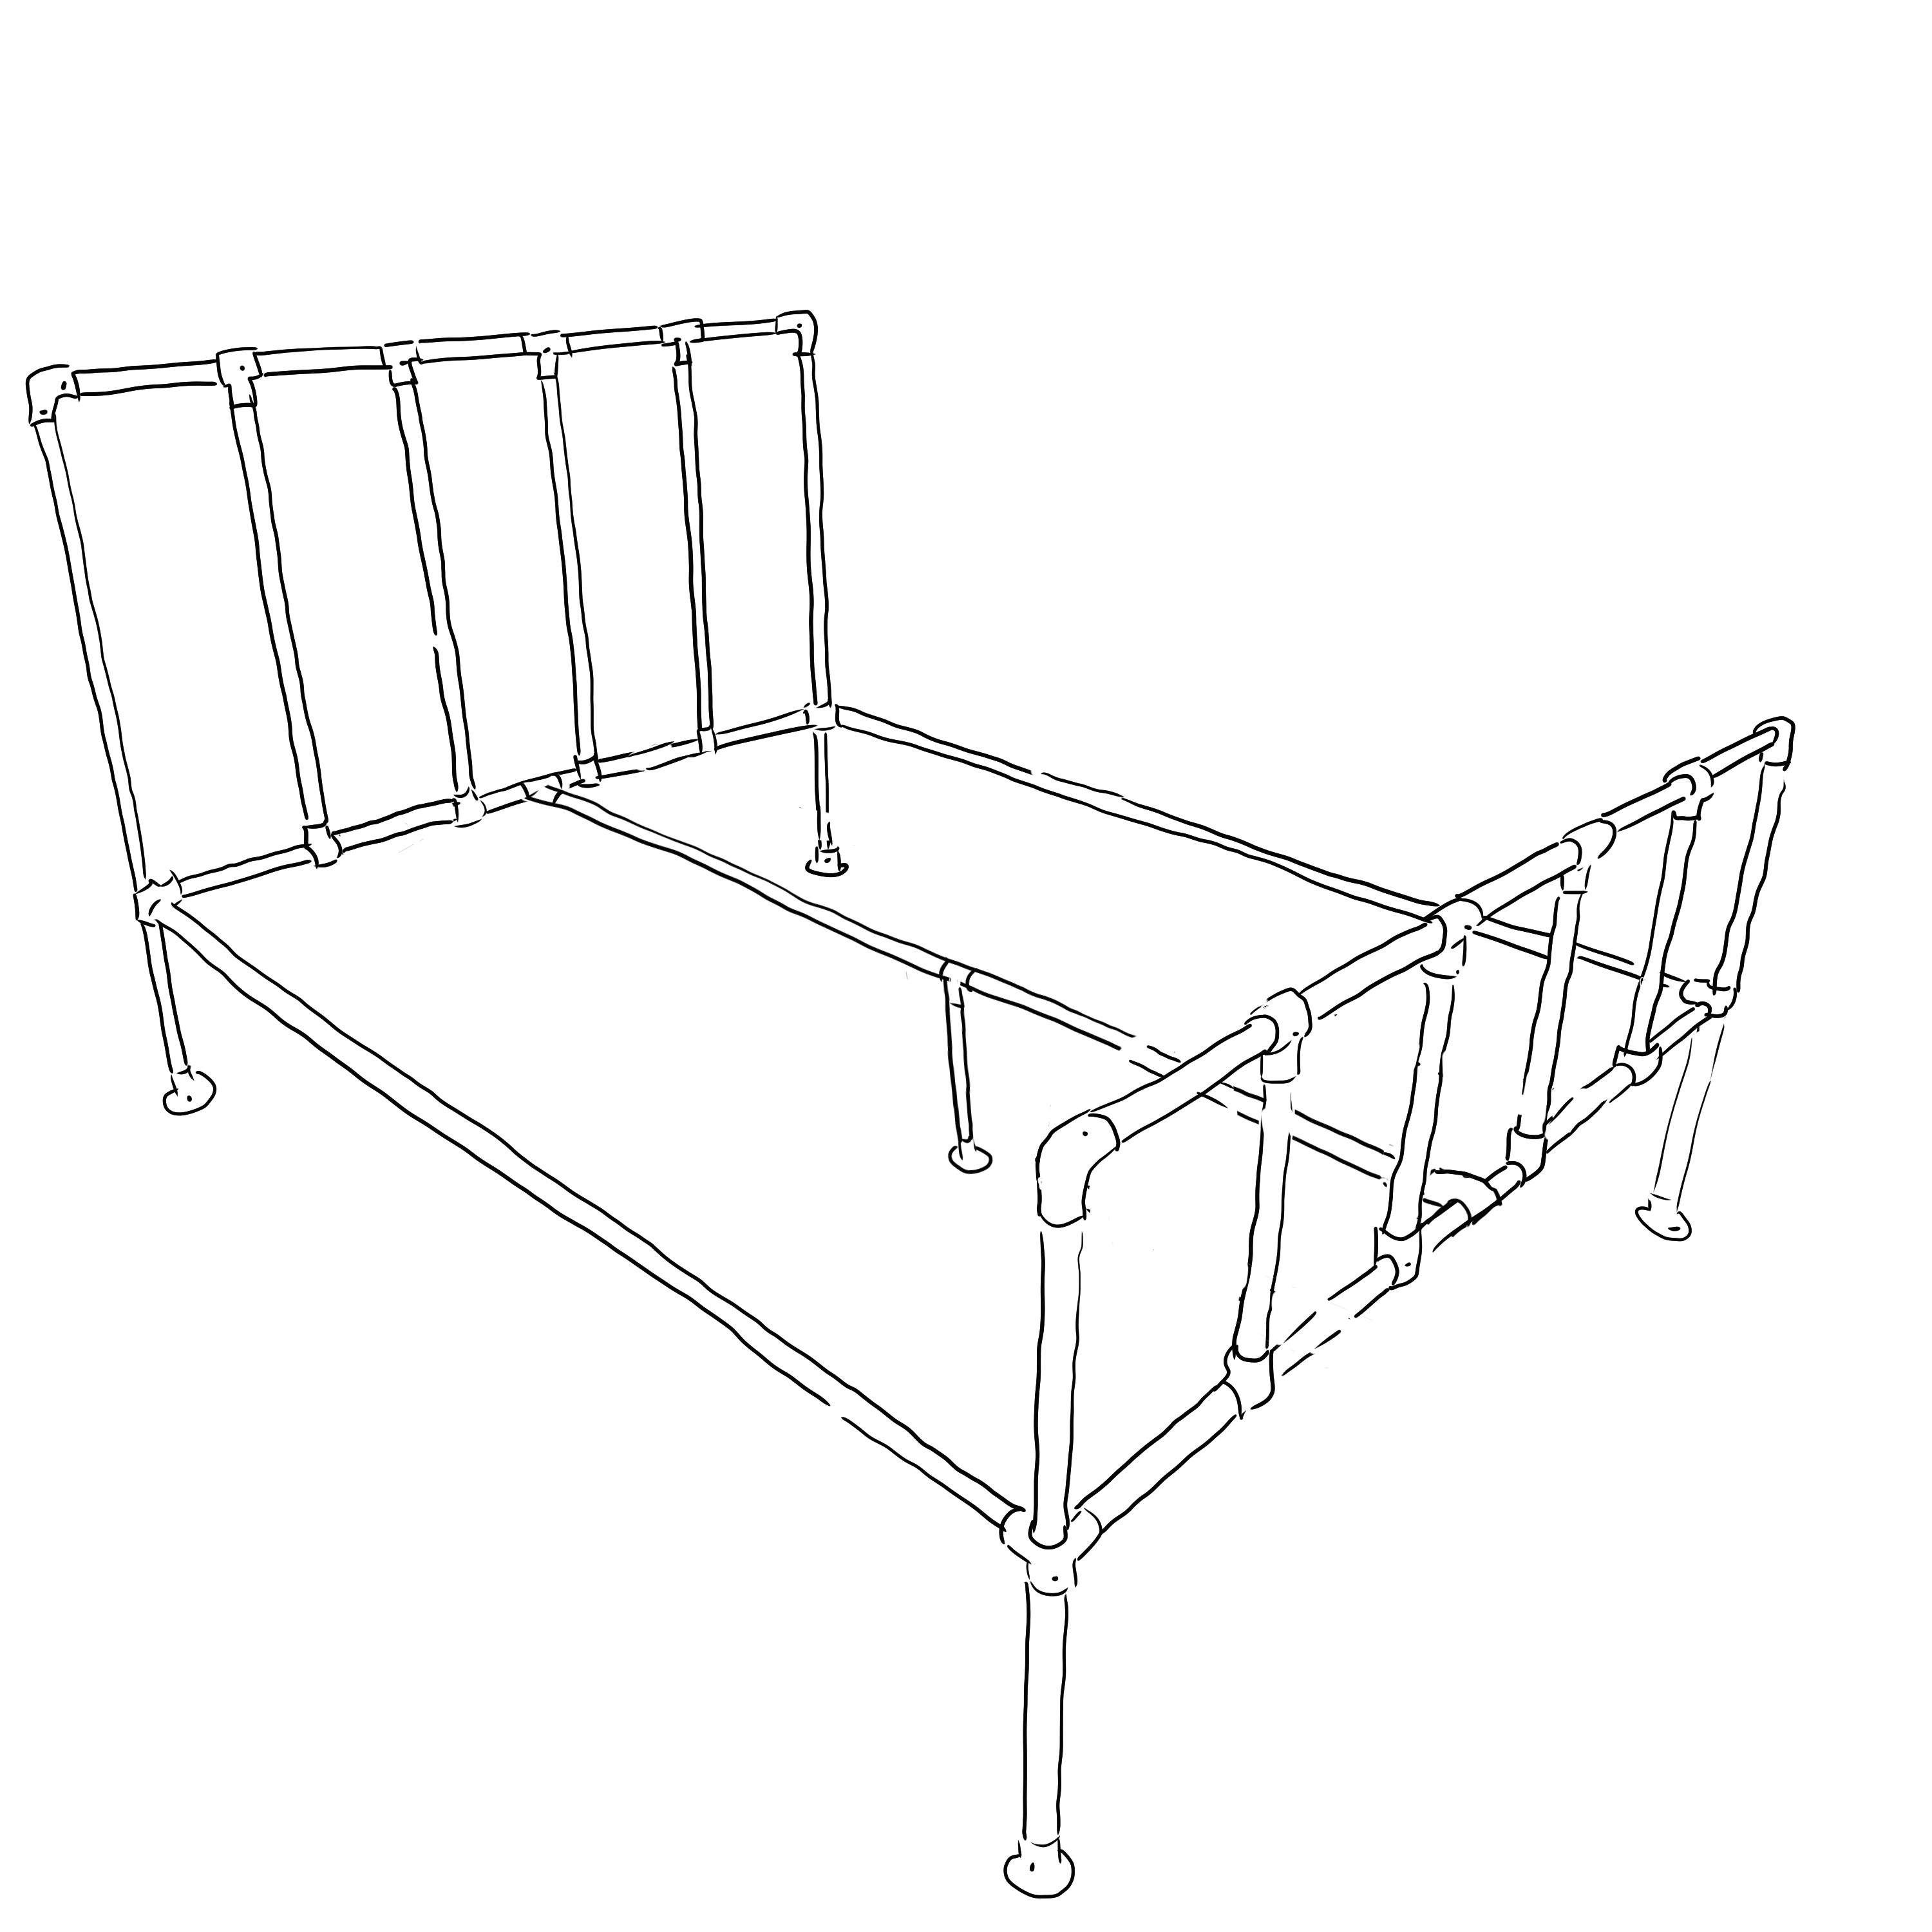 Camden industrial bed frame kit - Small double